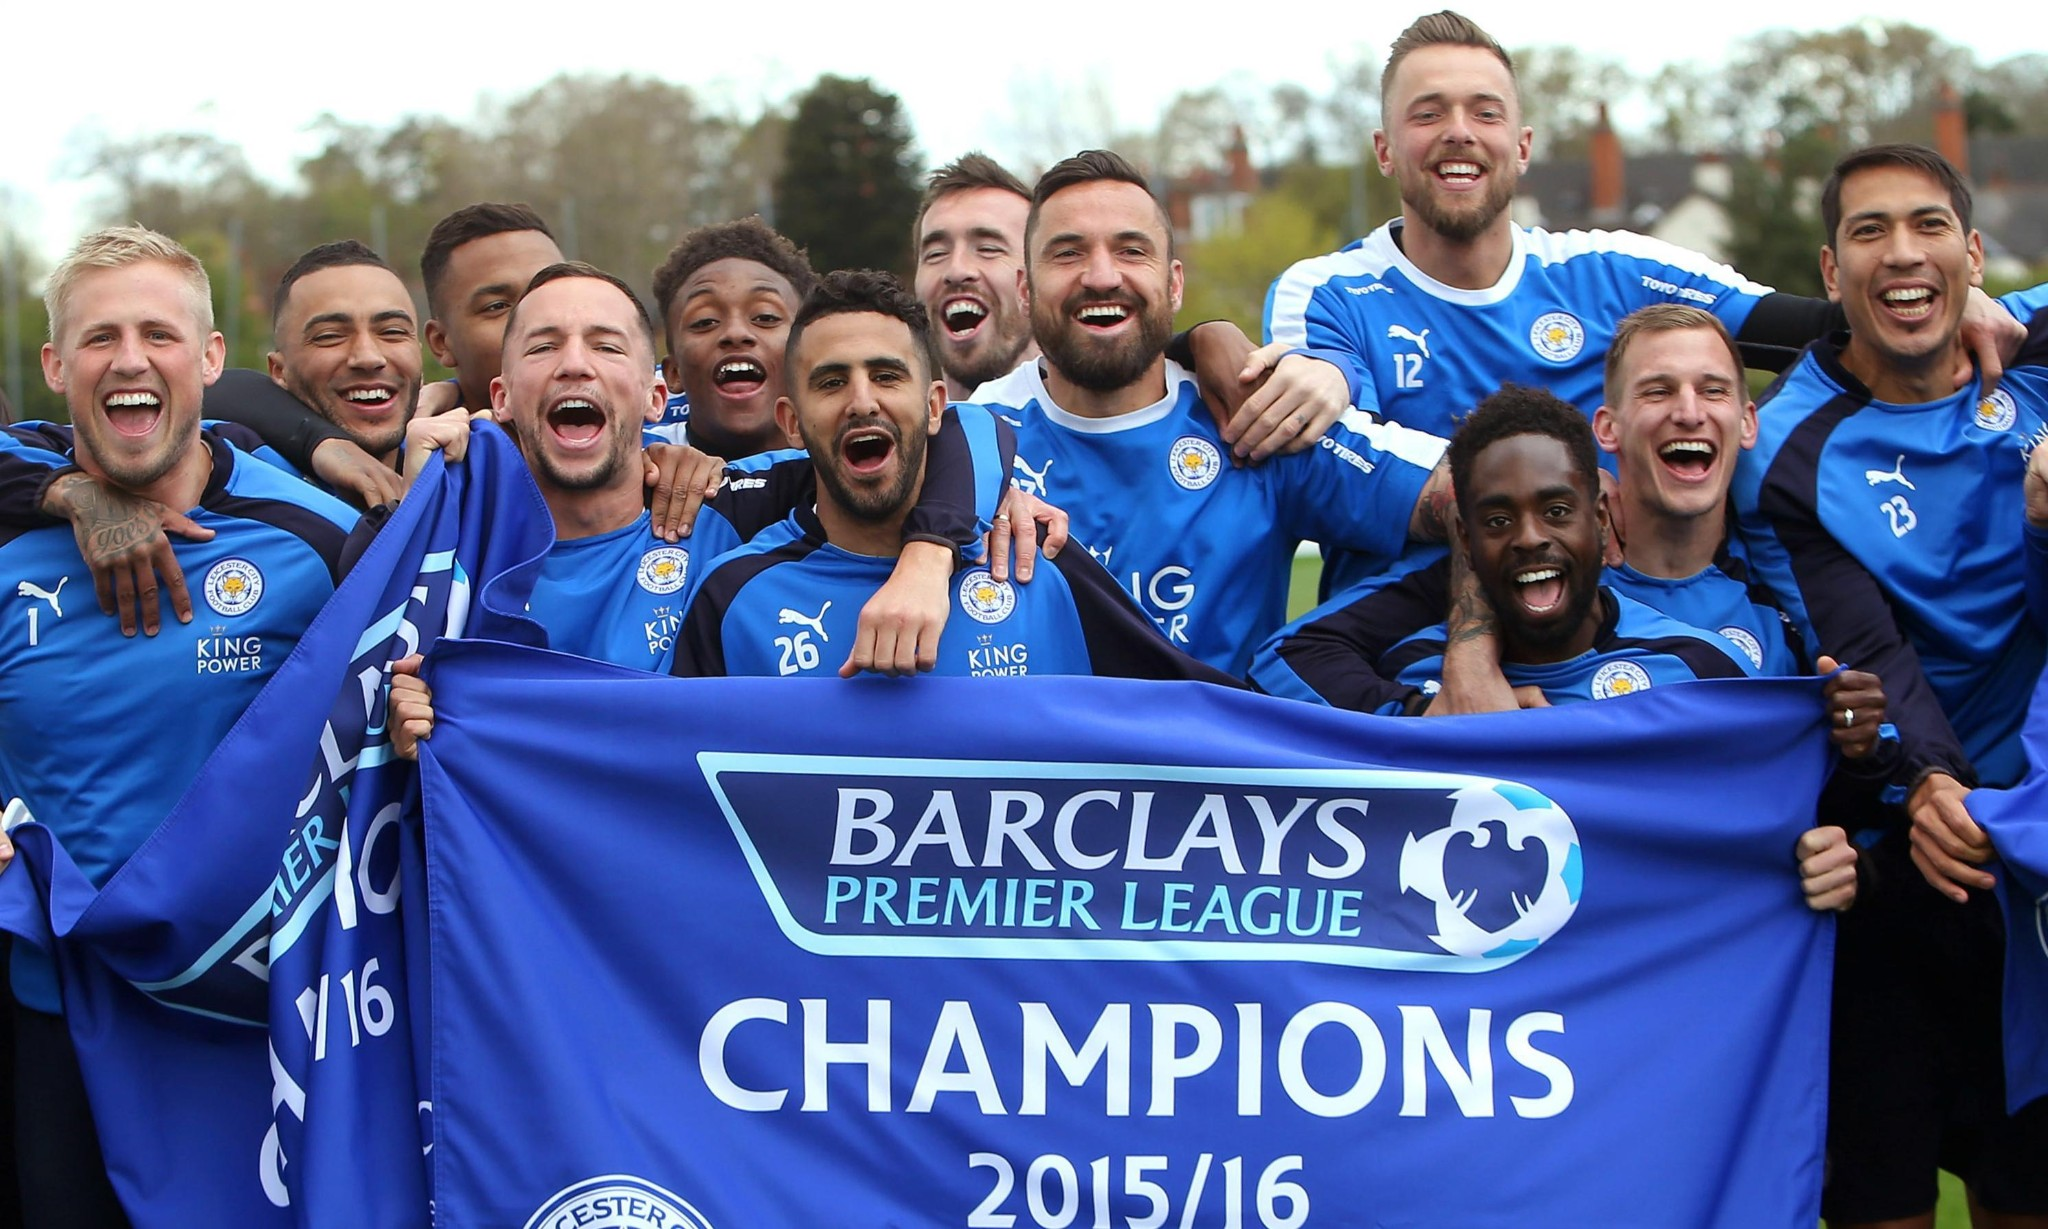 Leicester City's fairytale Premier League win - Magazine cover